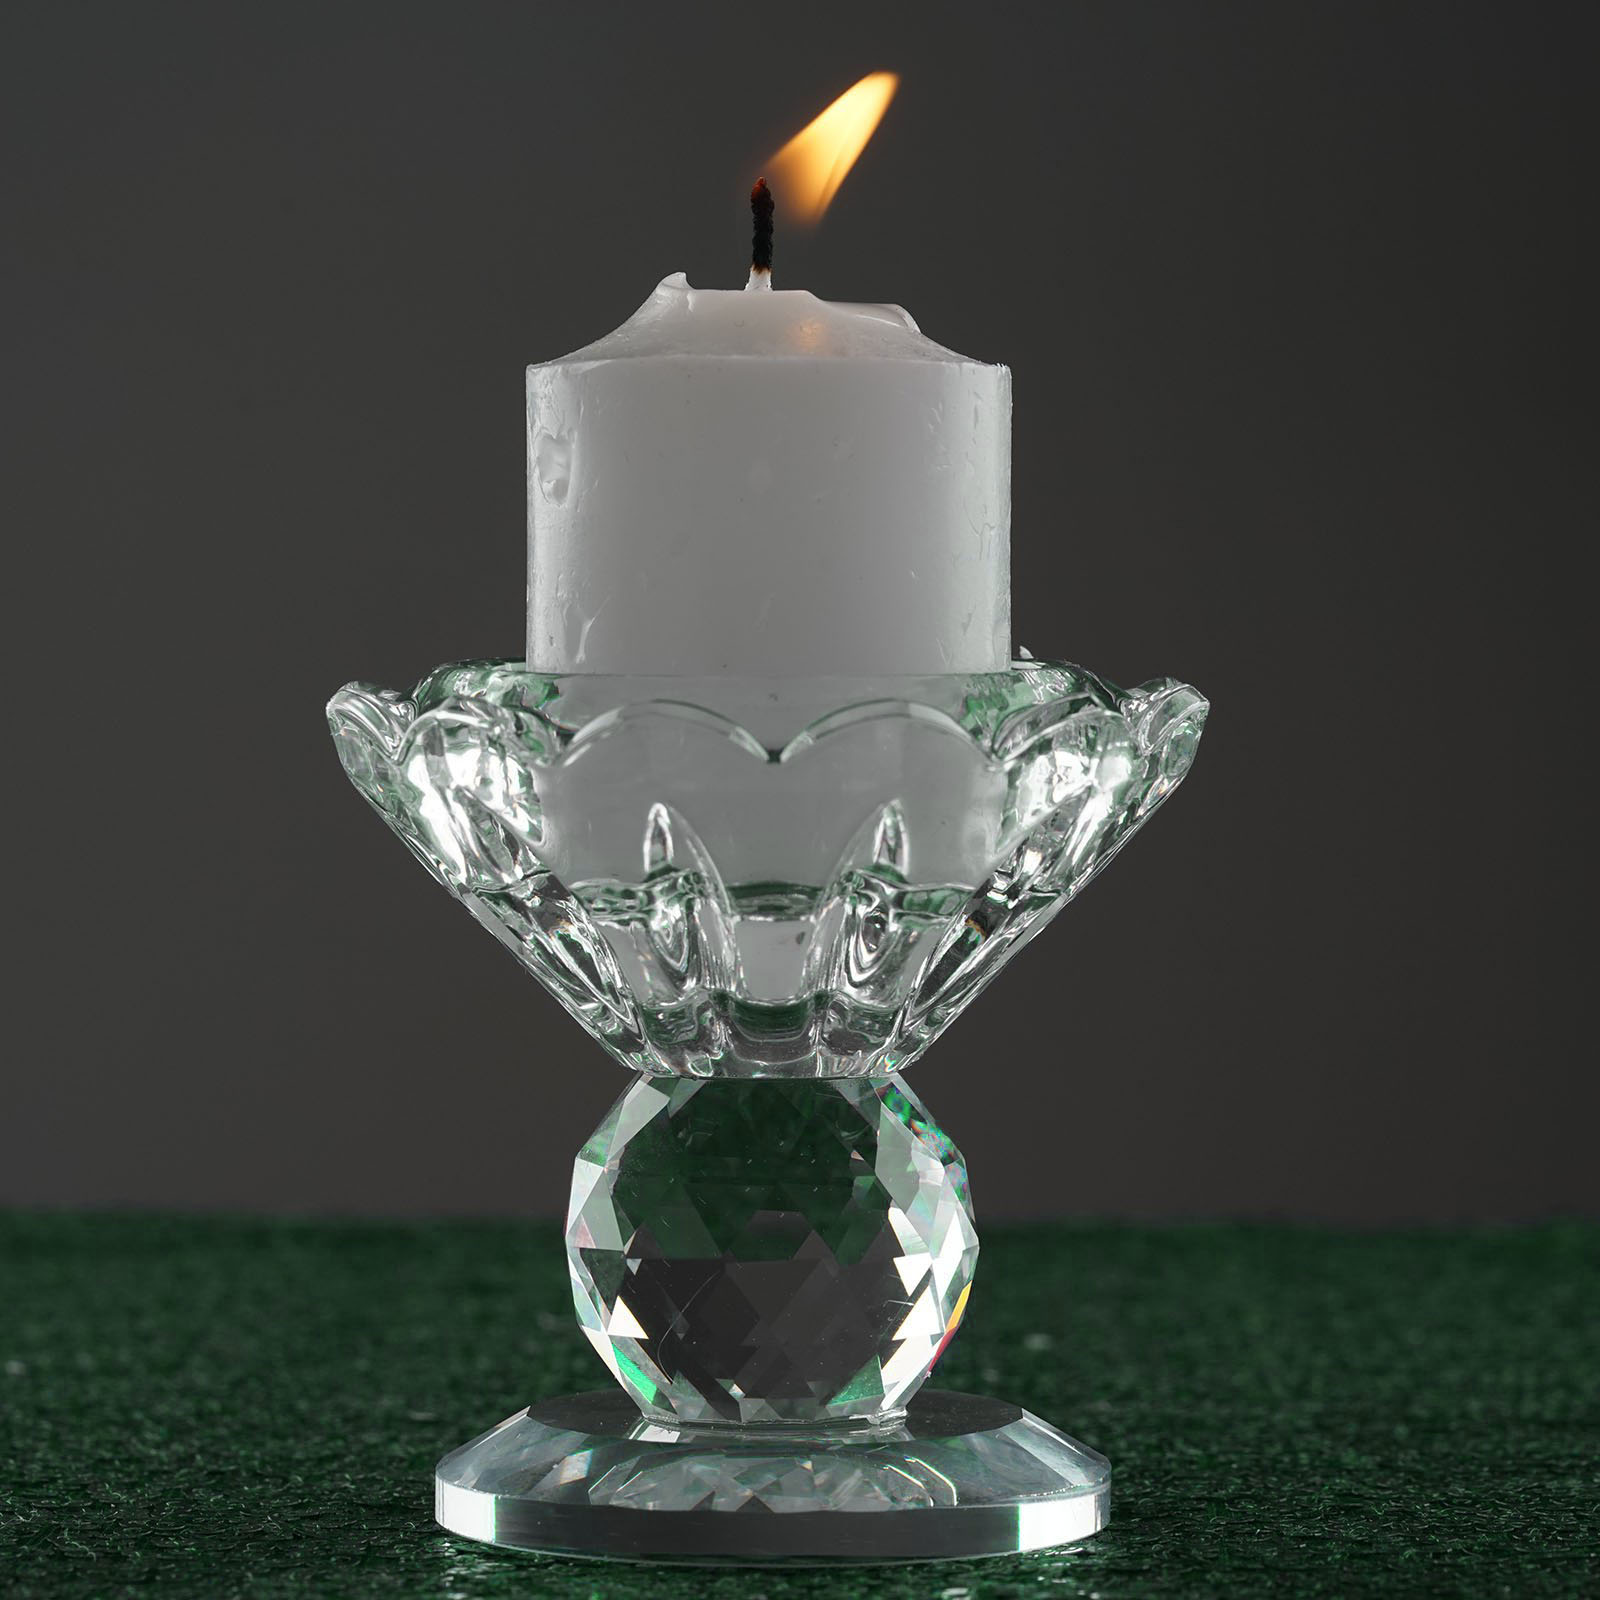 Details About Clear Crystal Candle Holder 25 Tall Candlestick Wedding Home Decorations SALE